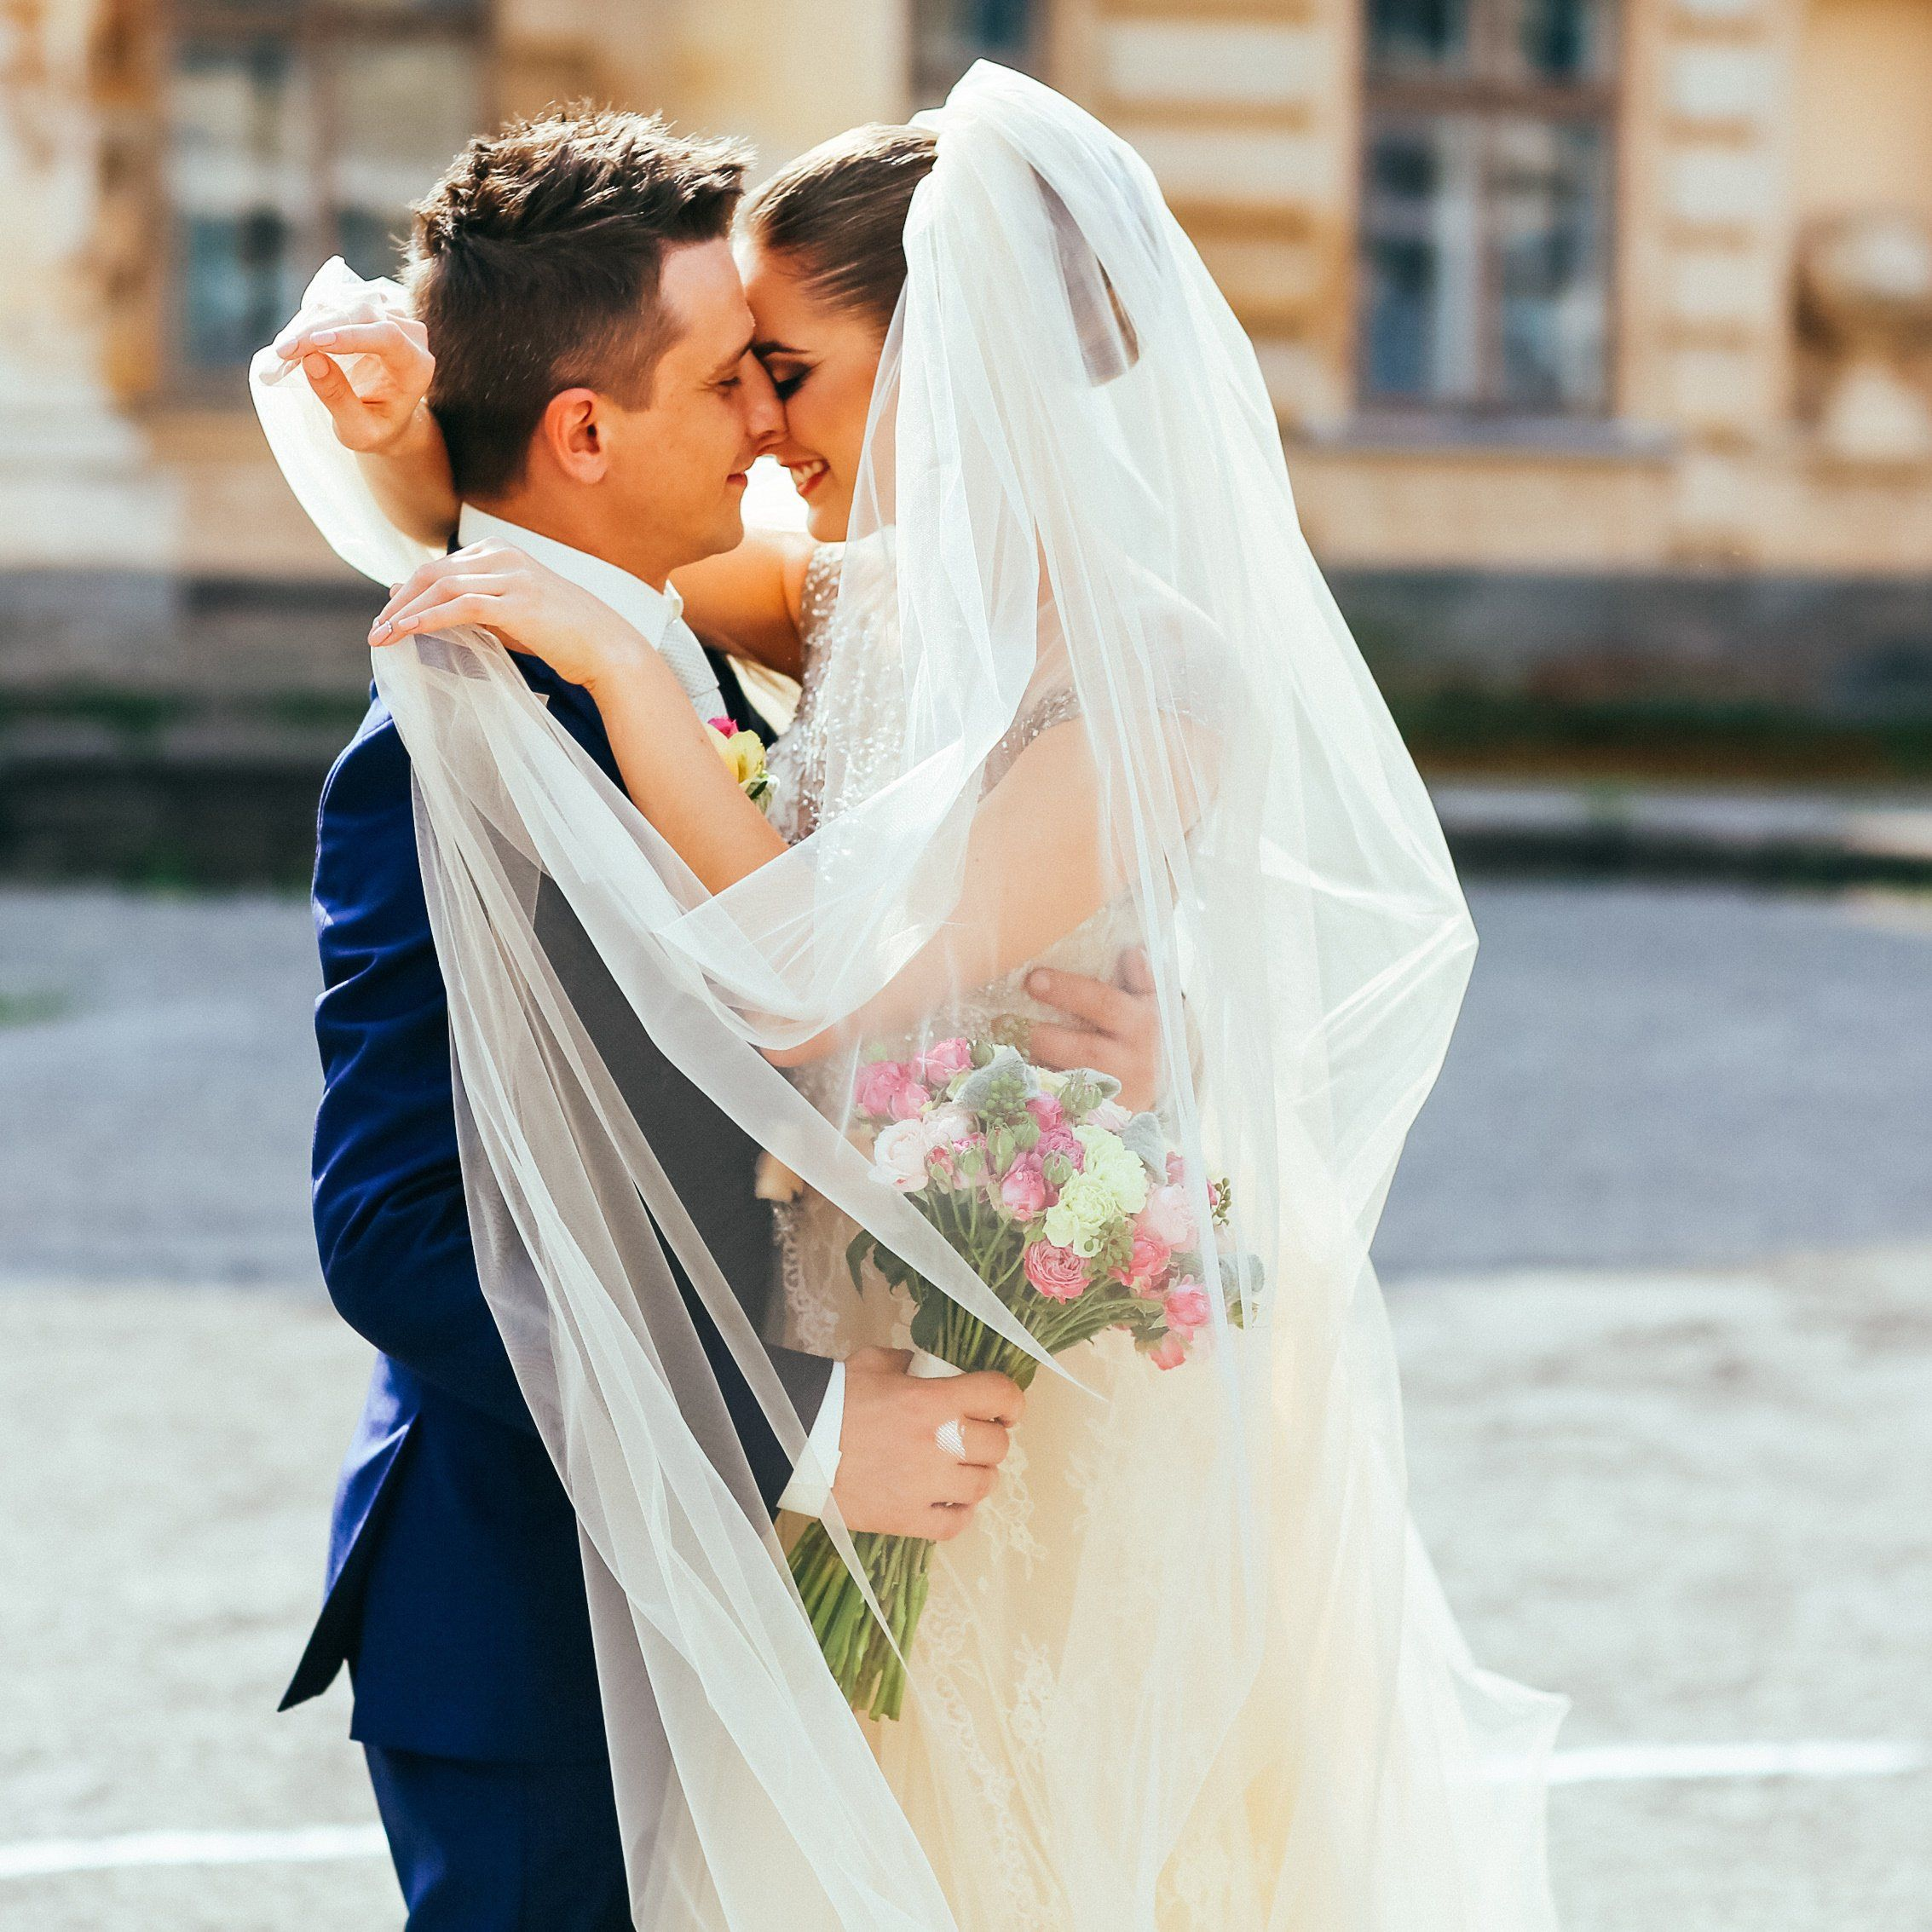 SALE! 10 off when you favorite the veil you want